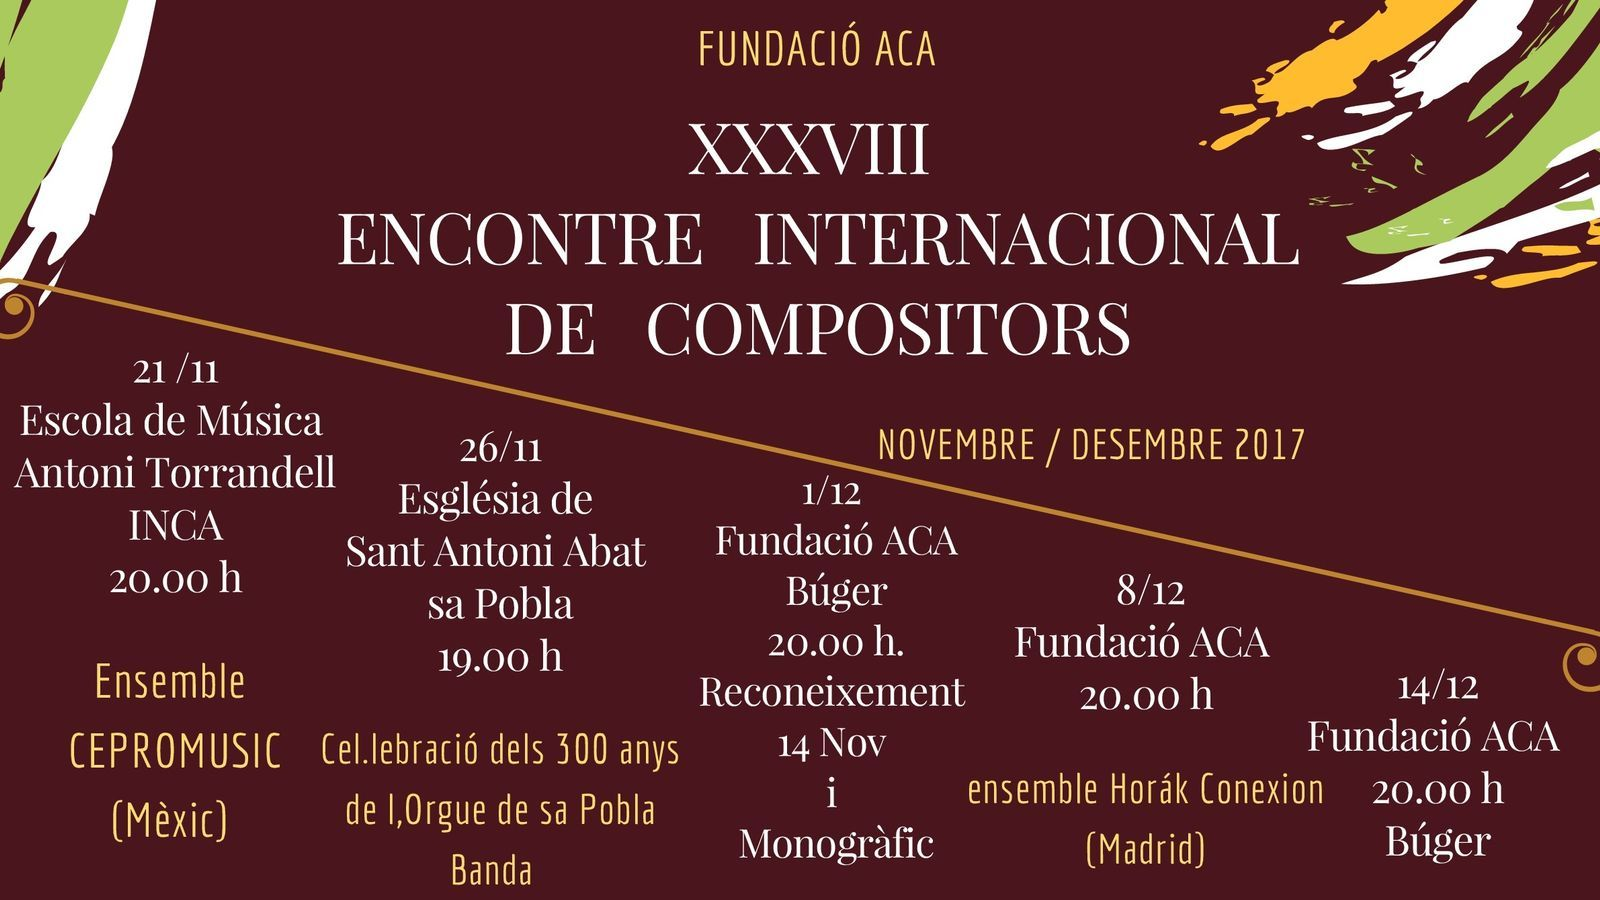 Cartell del XXXVIII Encontre Internacional de Compositors.